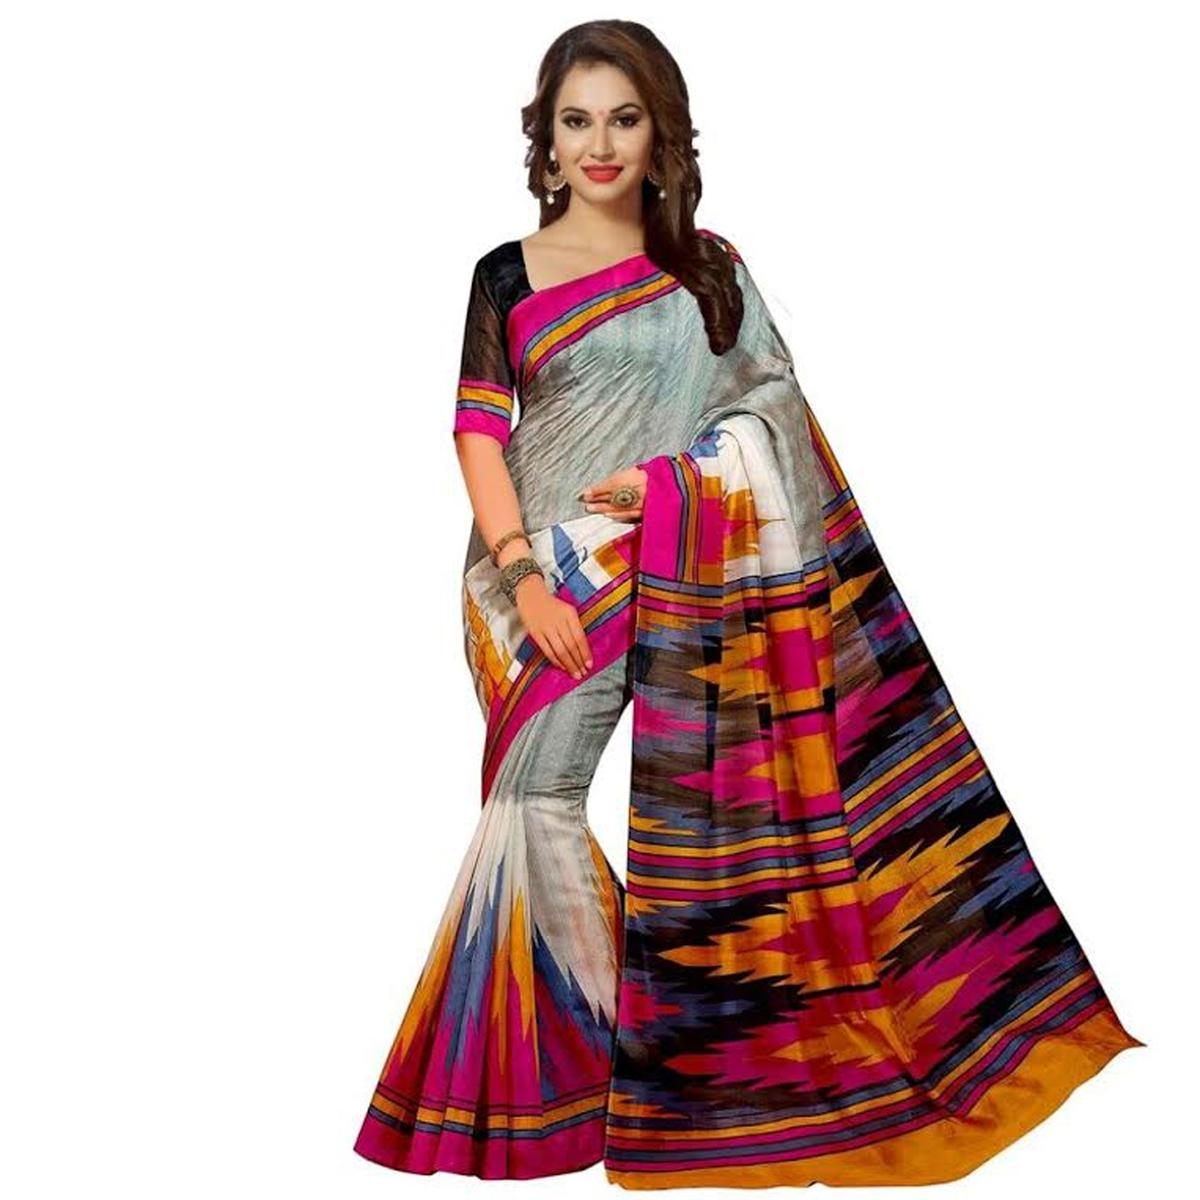 Multicolored Printed Bhagalpuri Saree